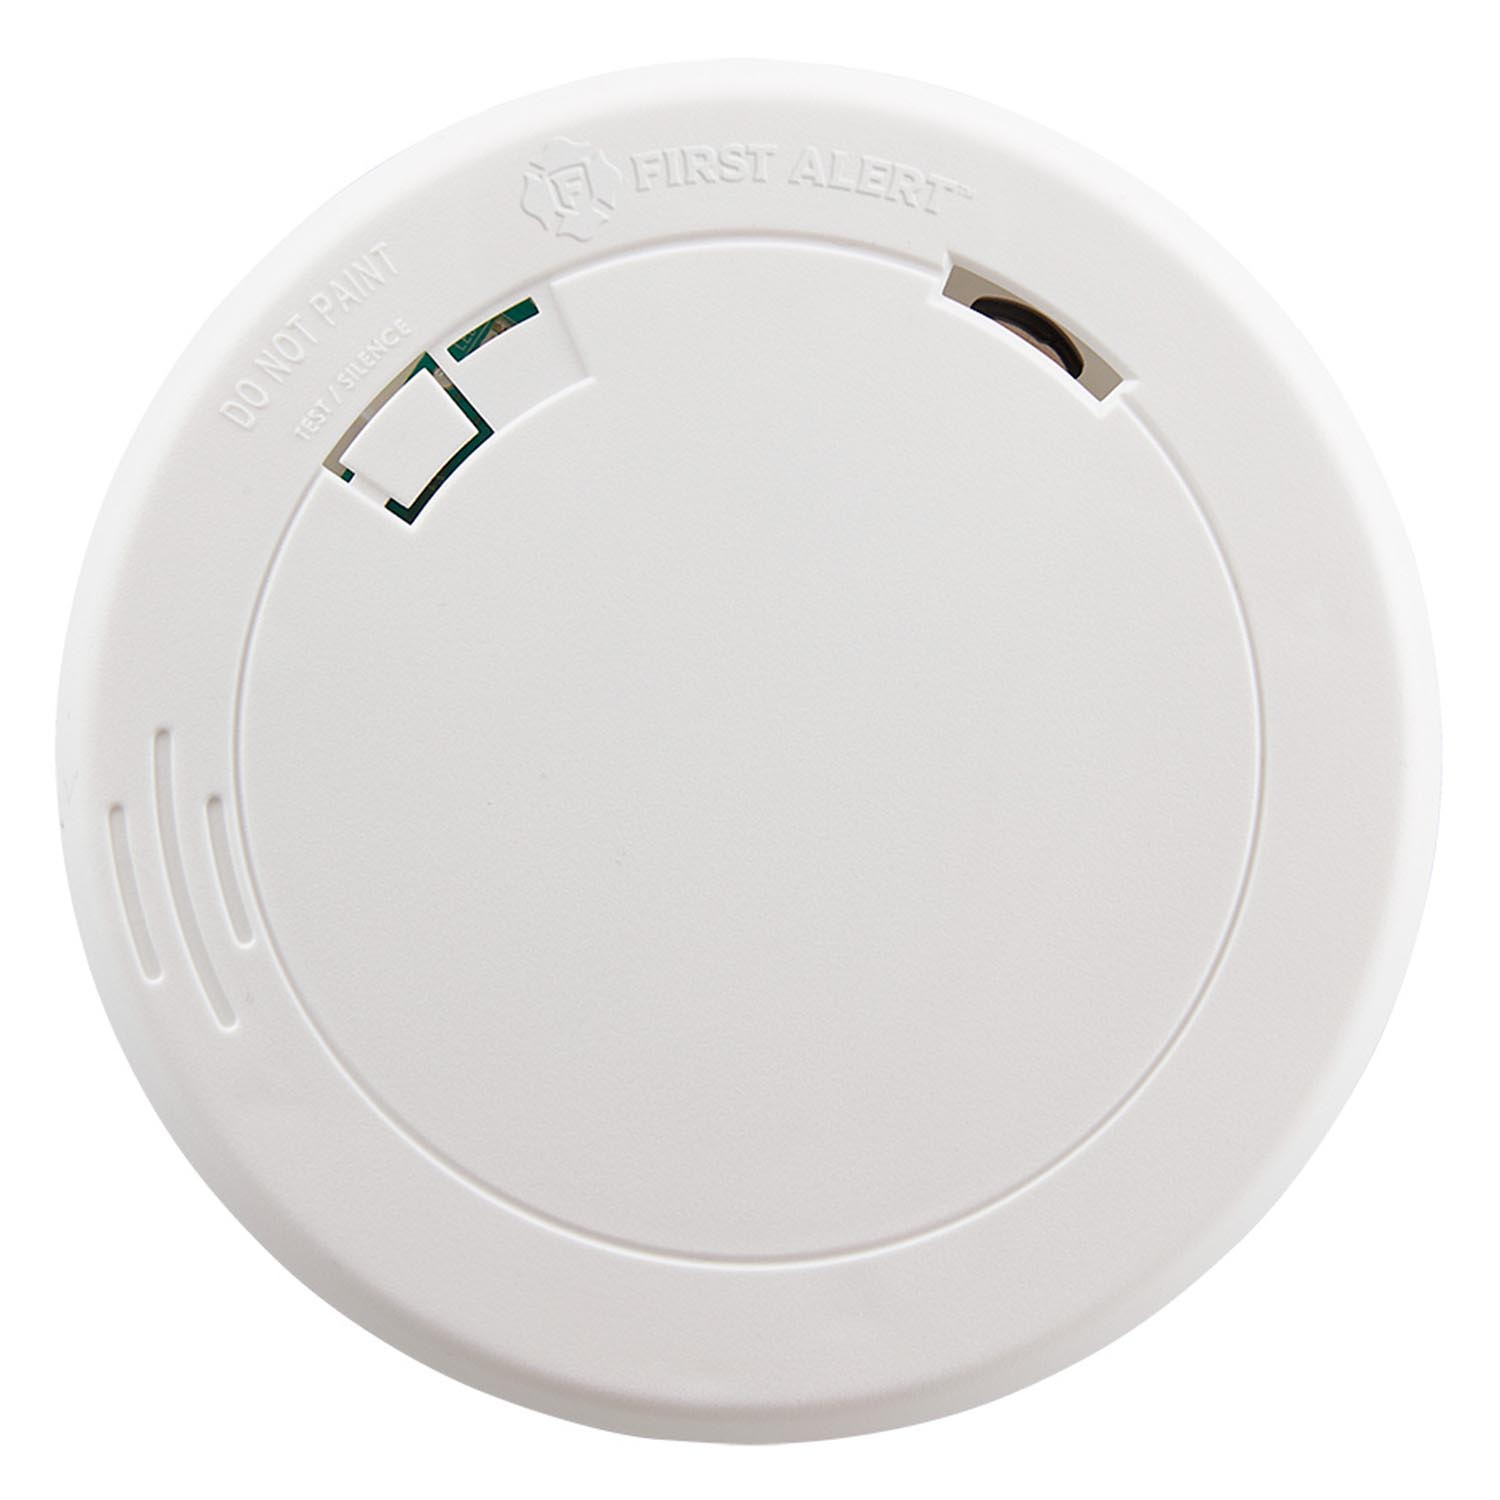 first alert pr700 battery powered photoelectric smoke alarm first alert store. Black Bedroom Furniture Sets. Home Design Ideas